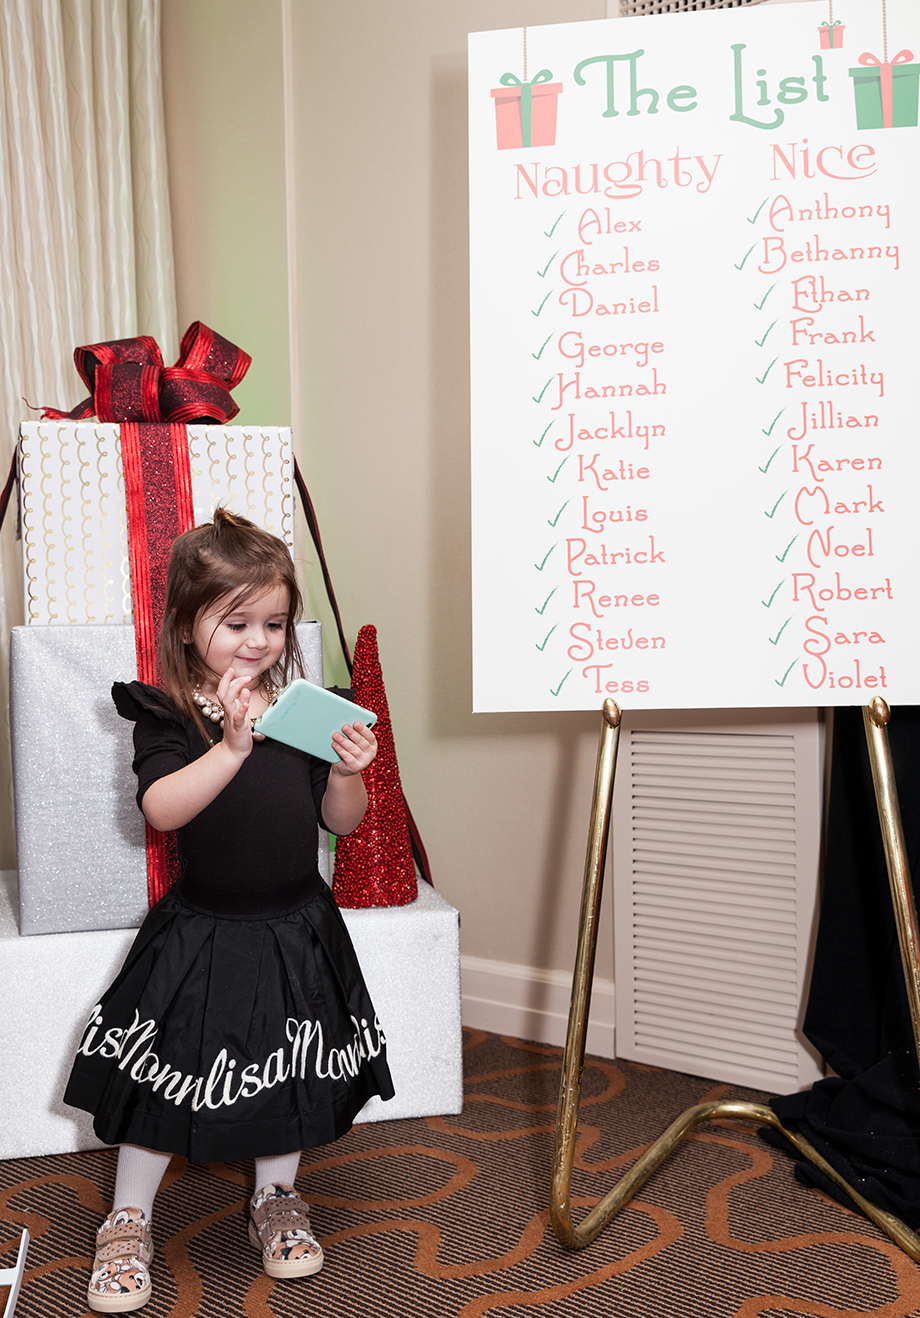 A little girl wearing a Mona Lisa outfit double checking Santa's list at the Swissotel in Chicago.